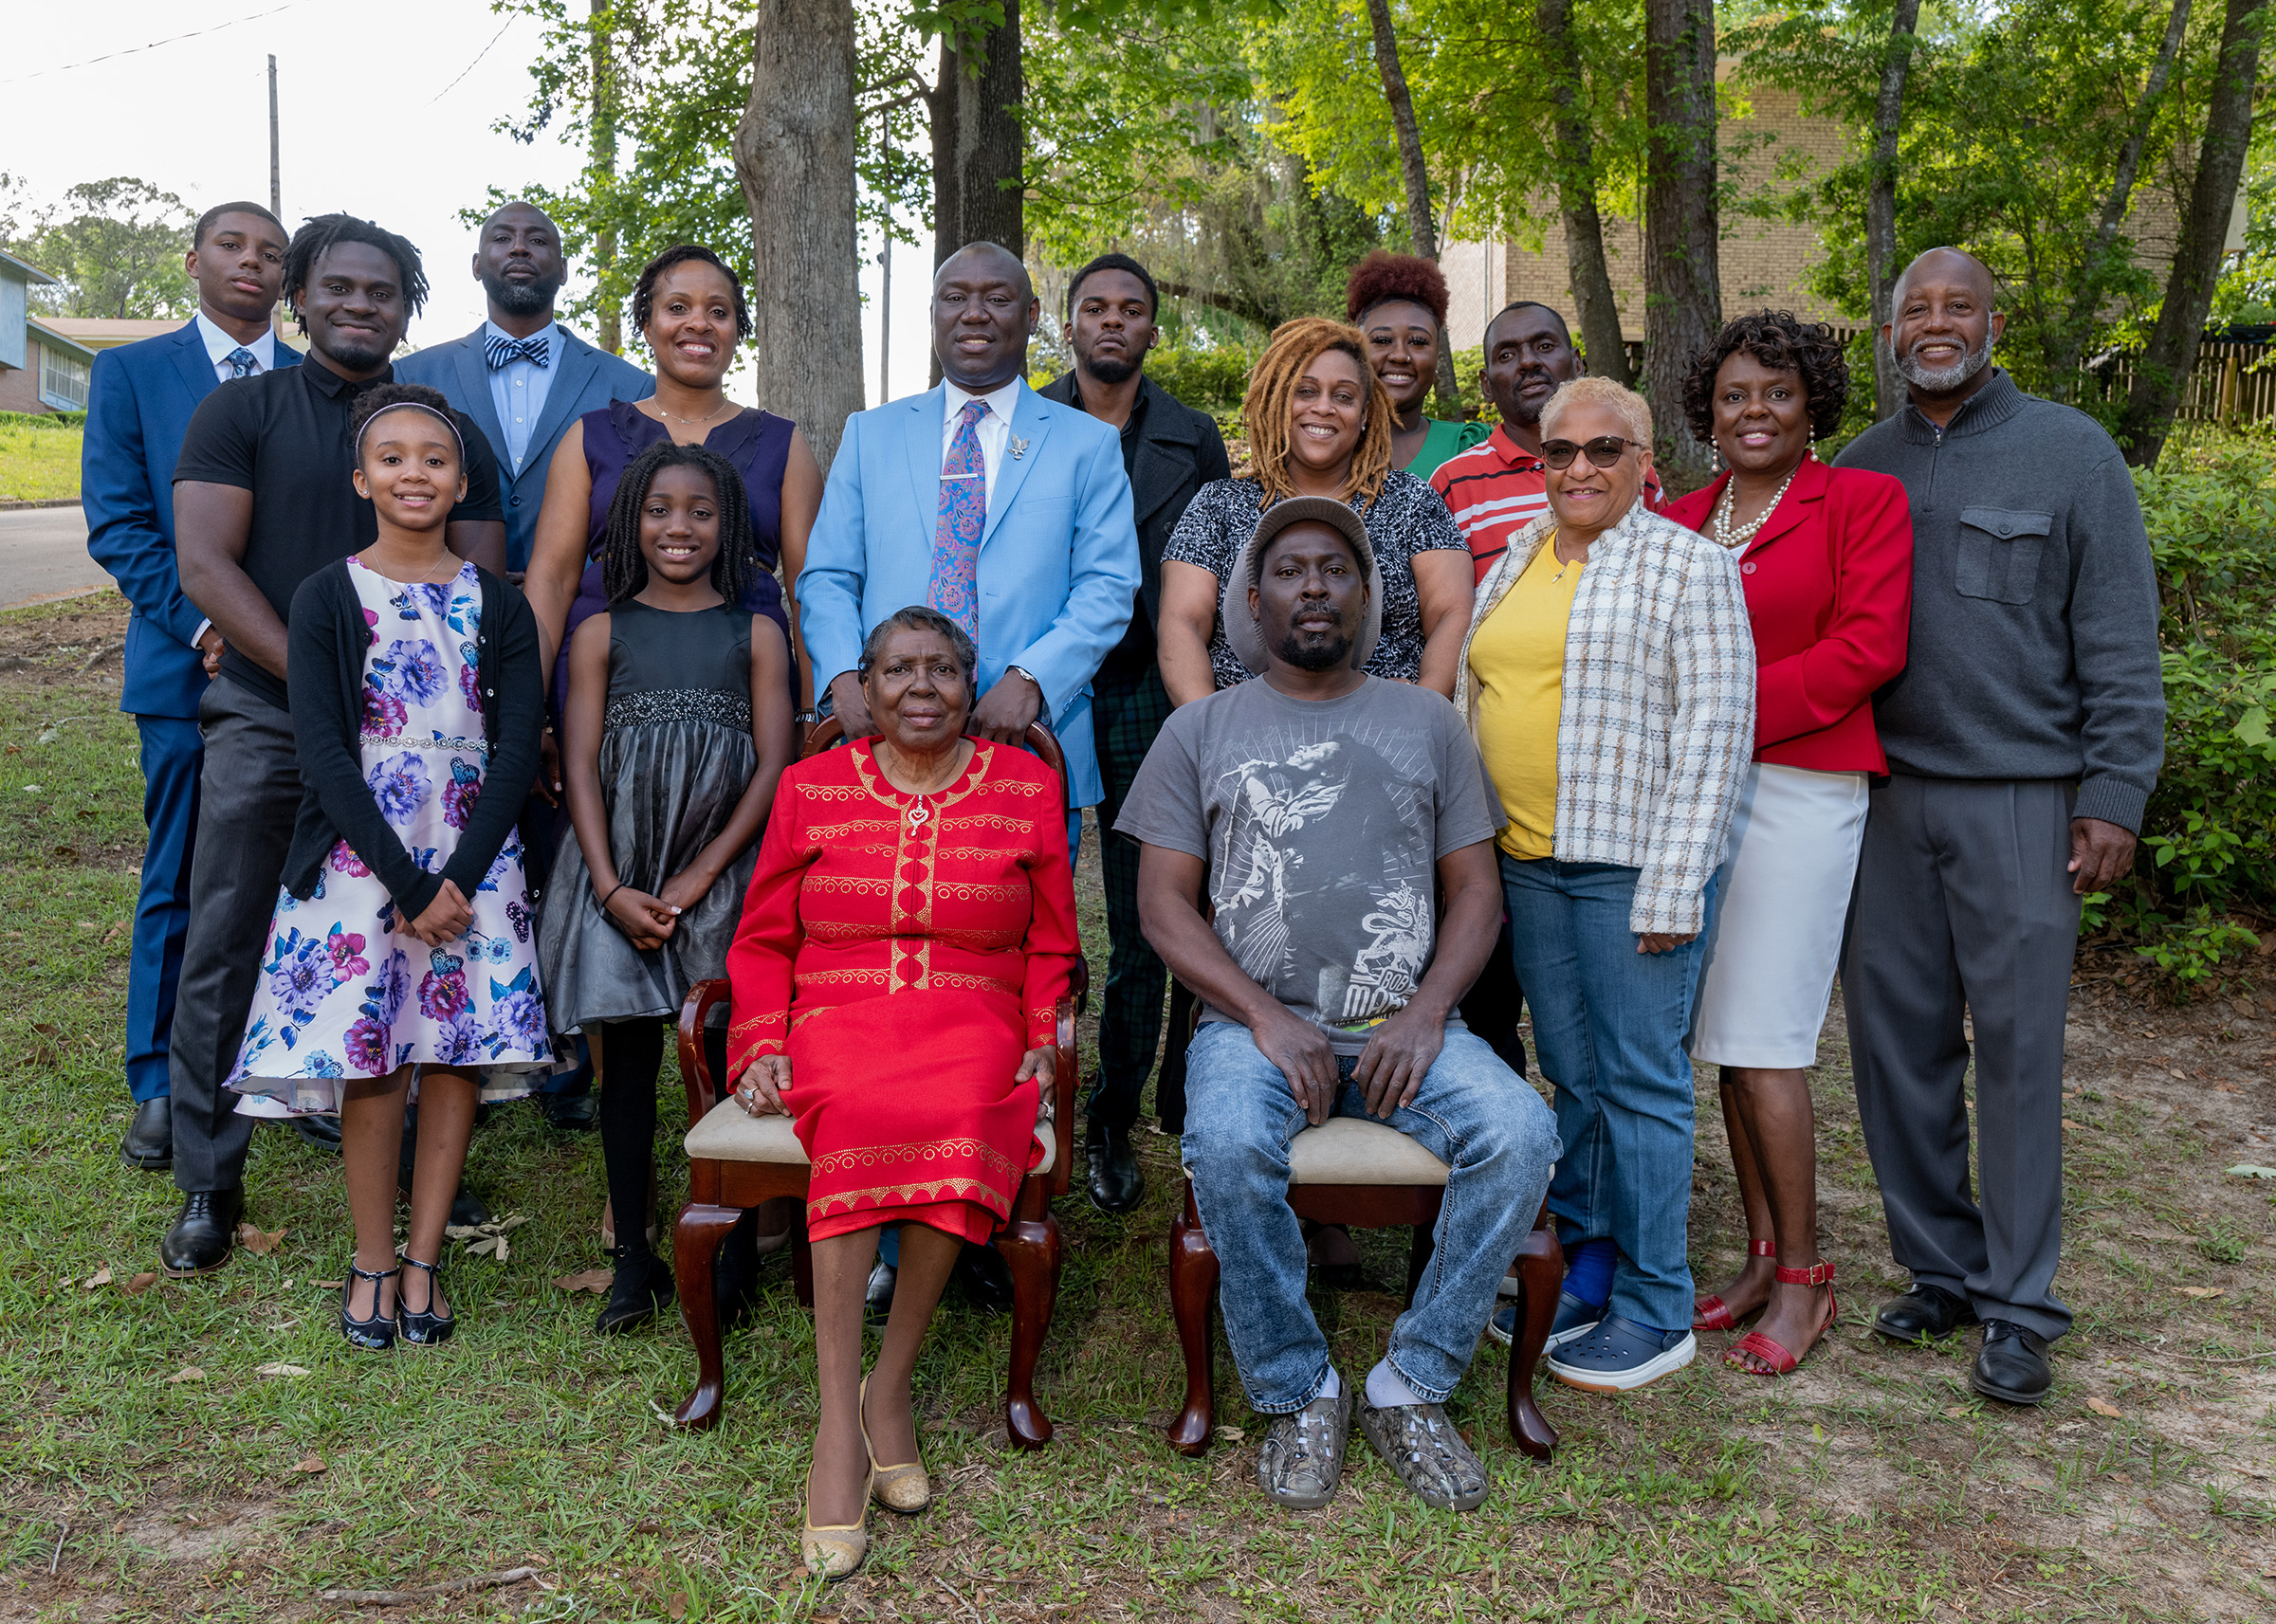 Crump stands behind his mother as the family poses for a photo on Easter Sunday, in Tallahassee, Fla., on April 4.